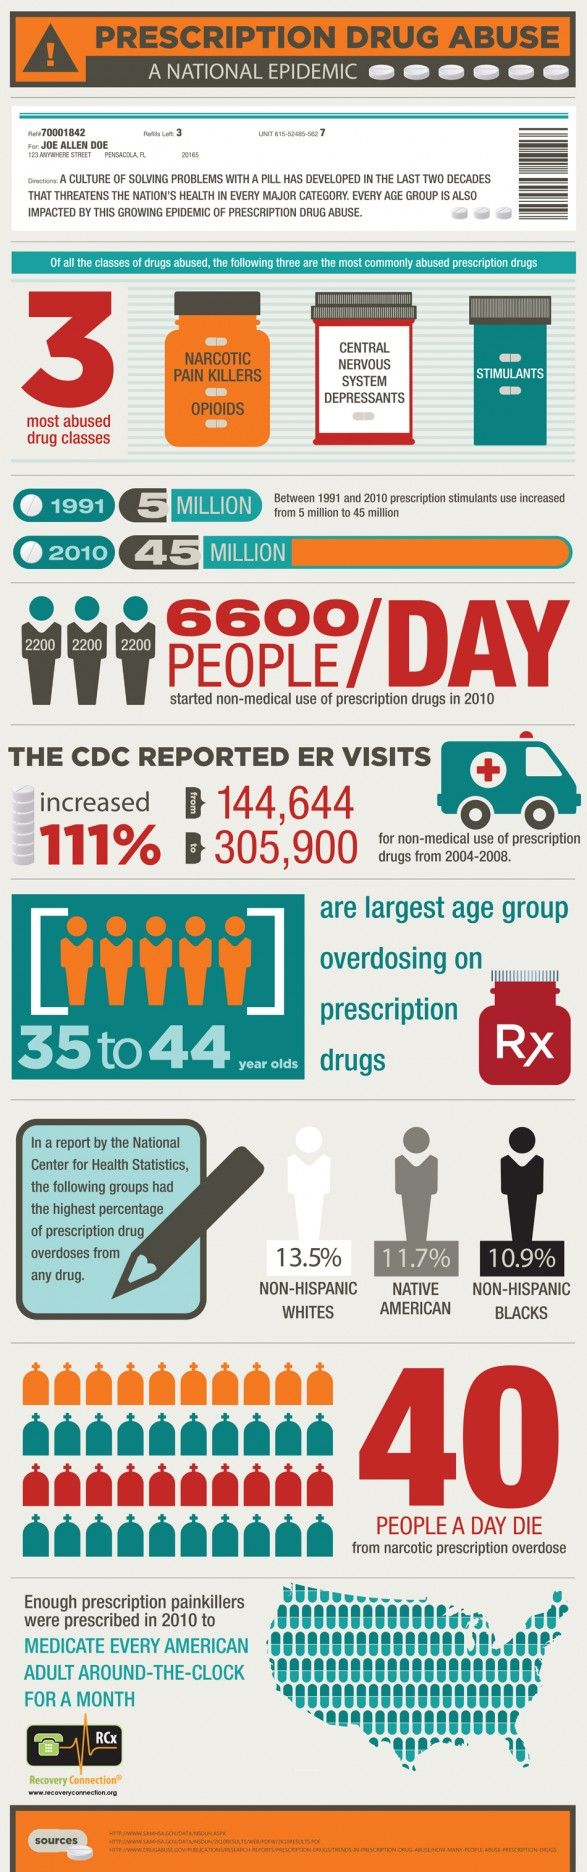 Prescription Drug Abuse: A National Epidemic  This infographic shows the top 3 prescription medicines being abused in the US today. Substance abuse is a national epidemic. Prevention is crucial. As parents we need to talk to our children about the dangers of prescription and OTC medicines if used incorrectly. The war on drugs is not enough.